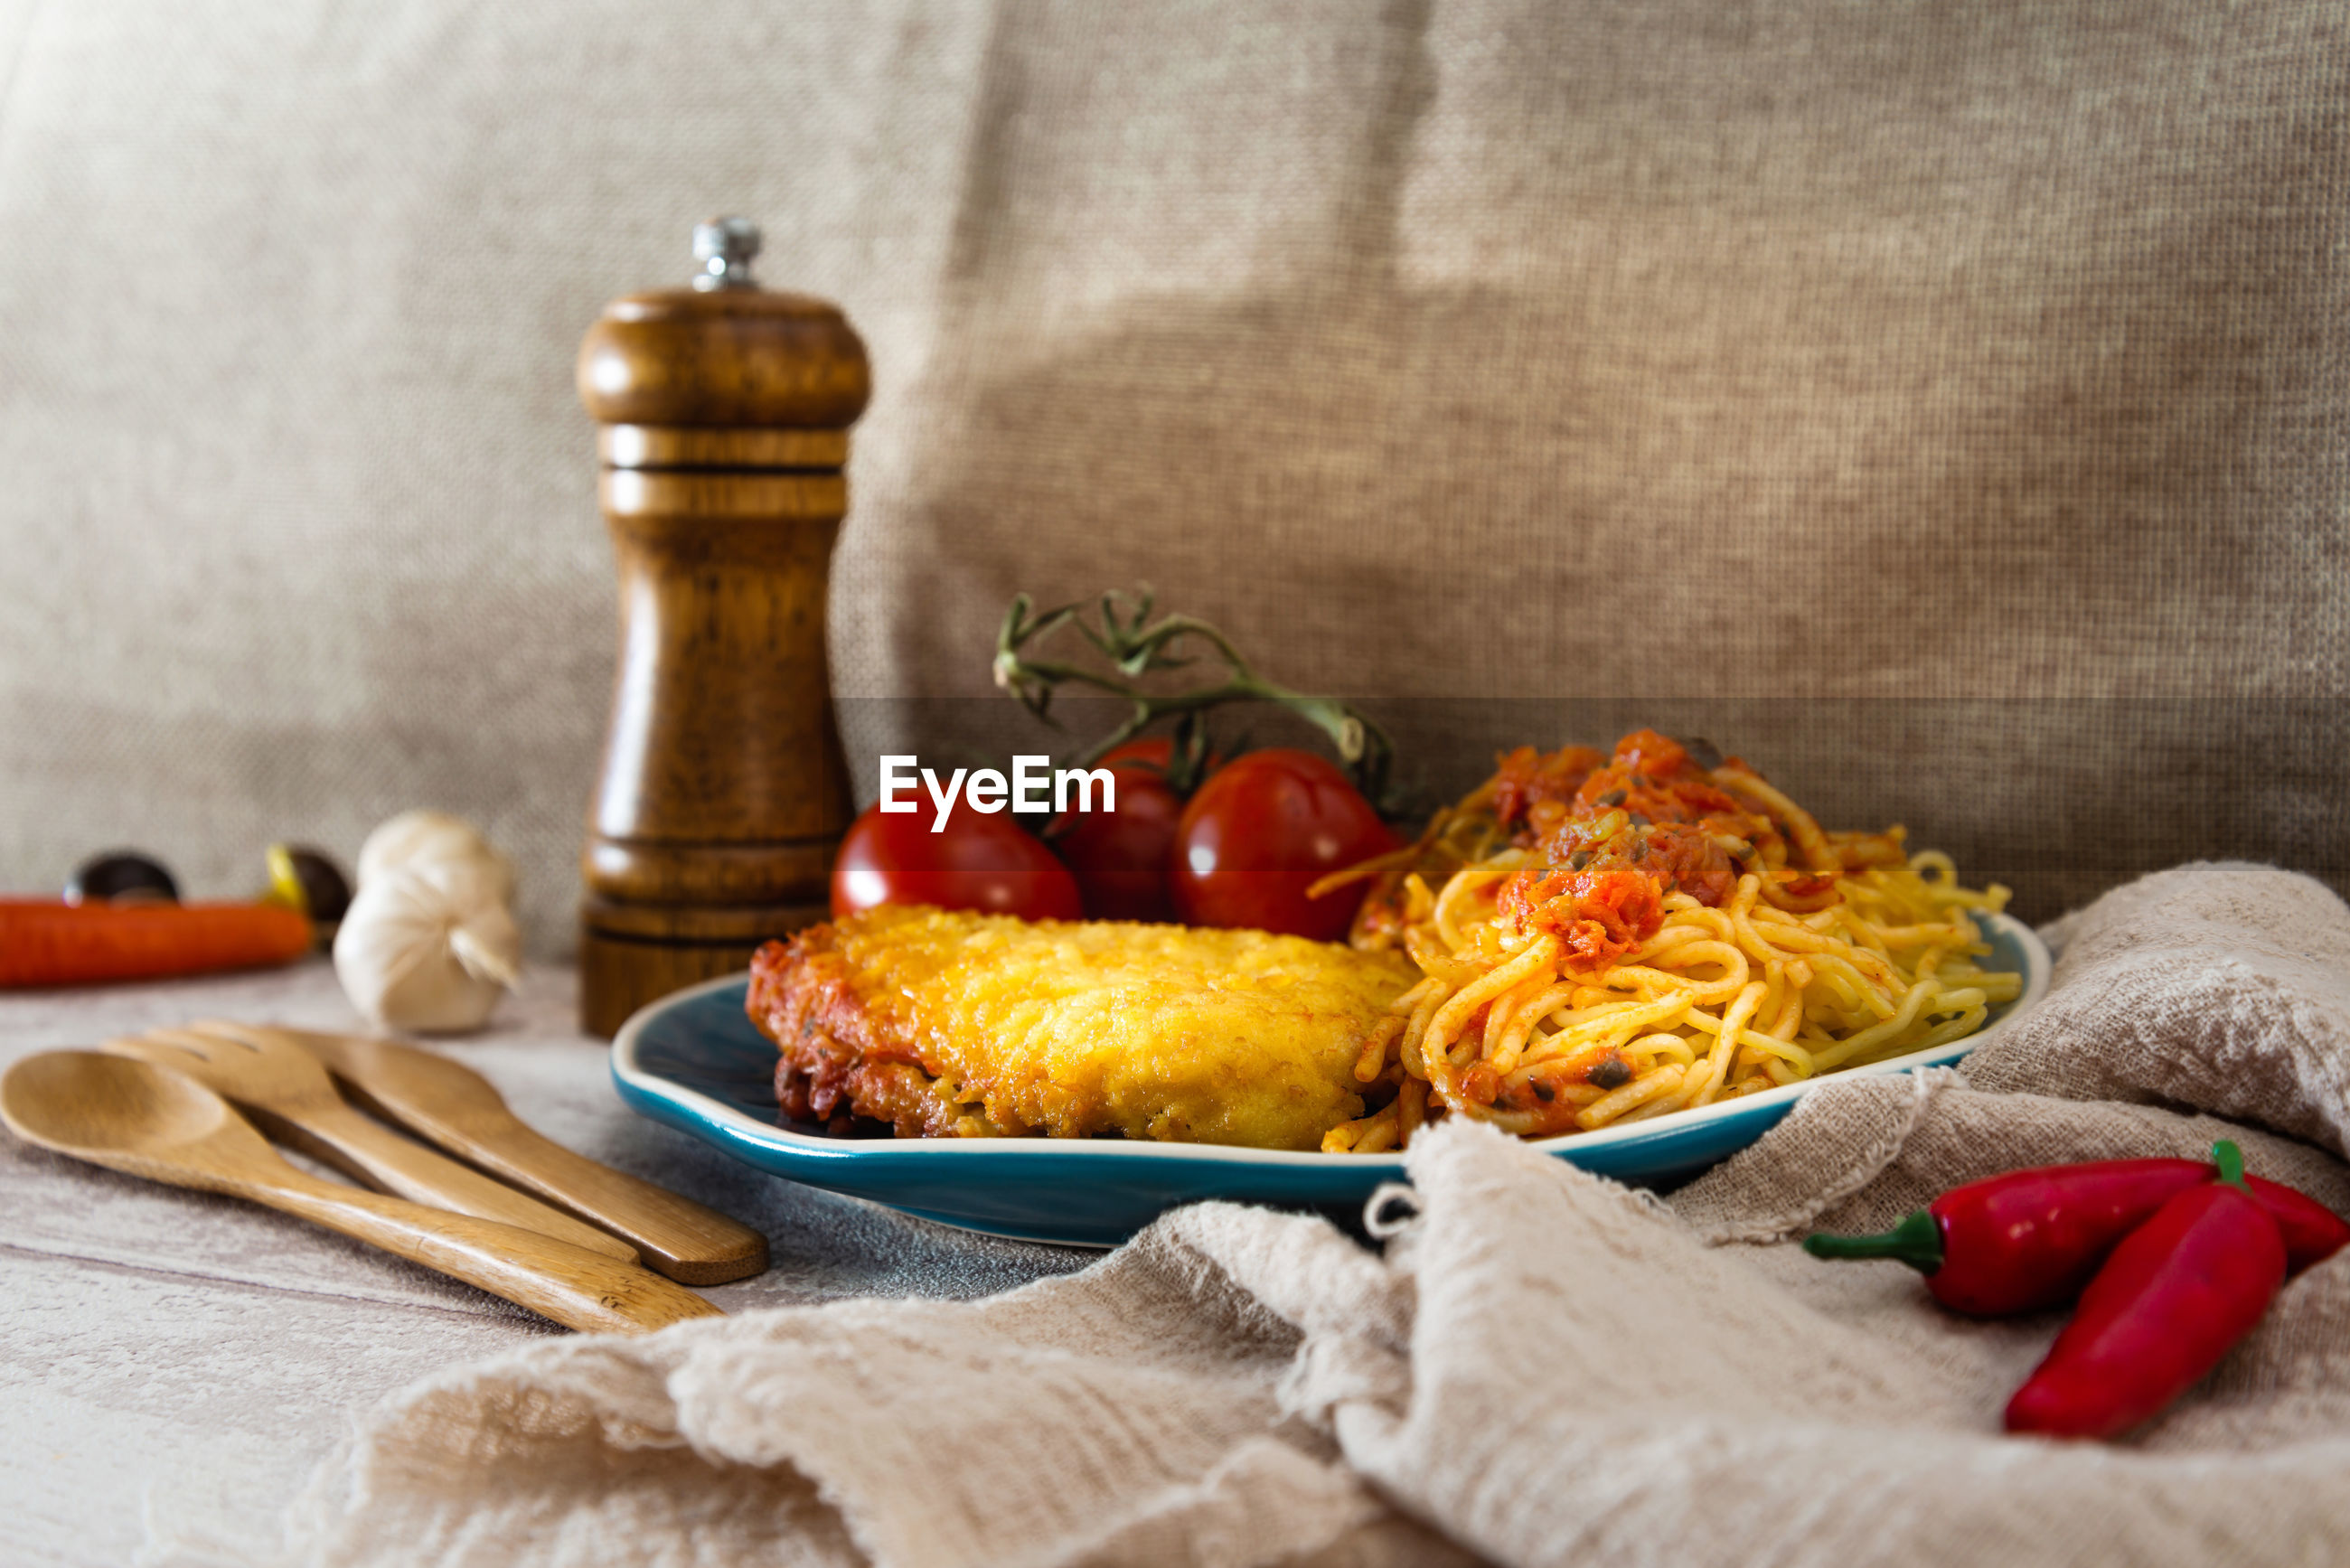 Close-up of spaghetti served in plate